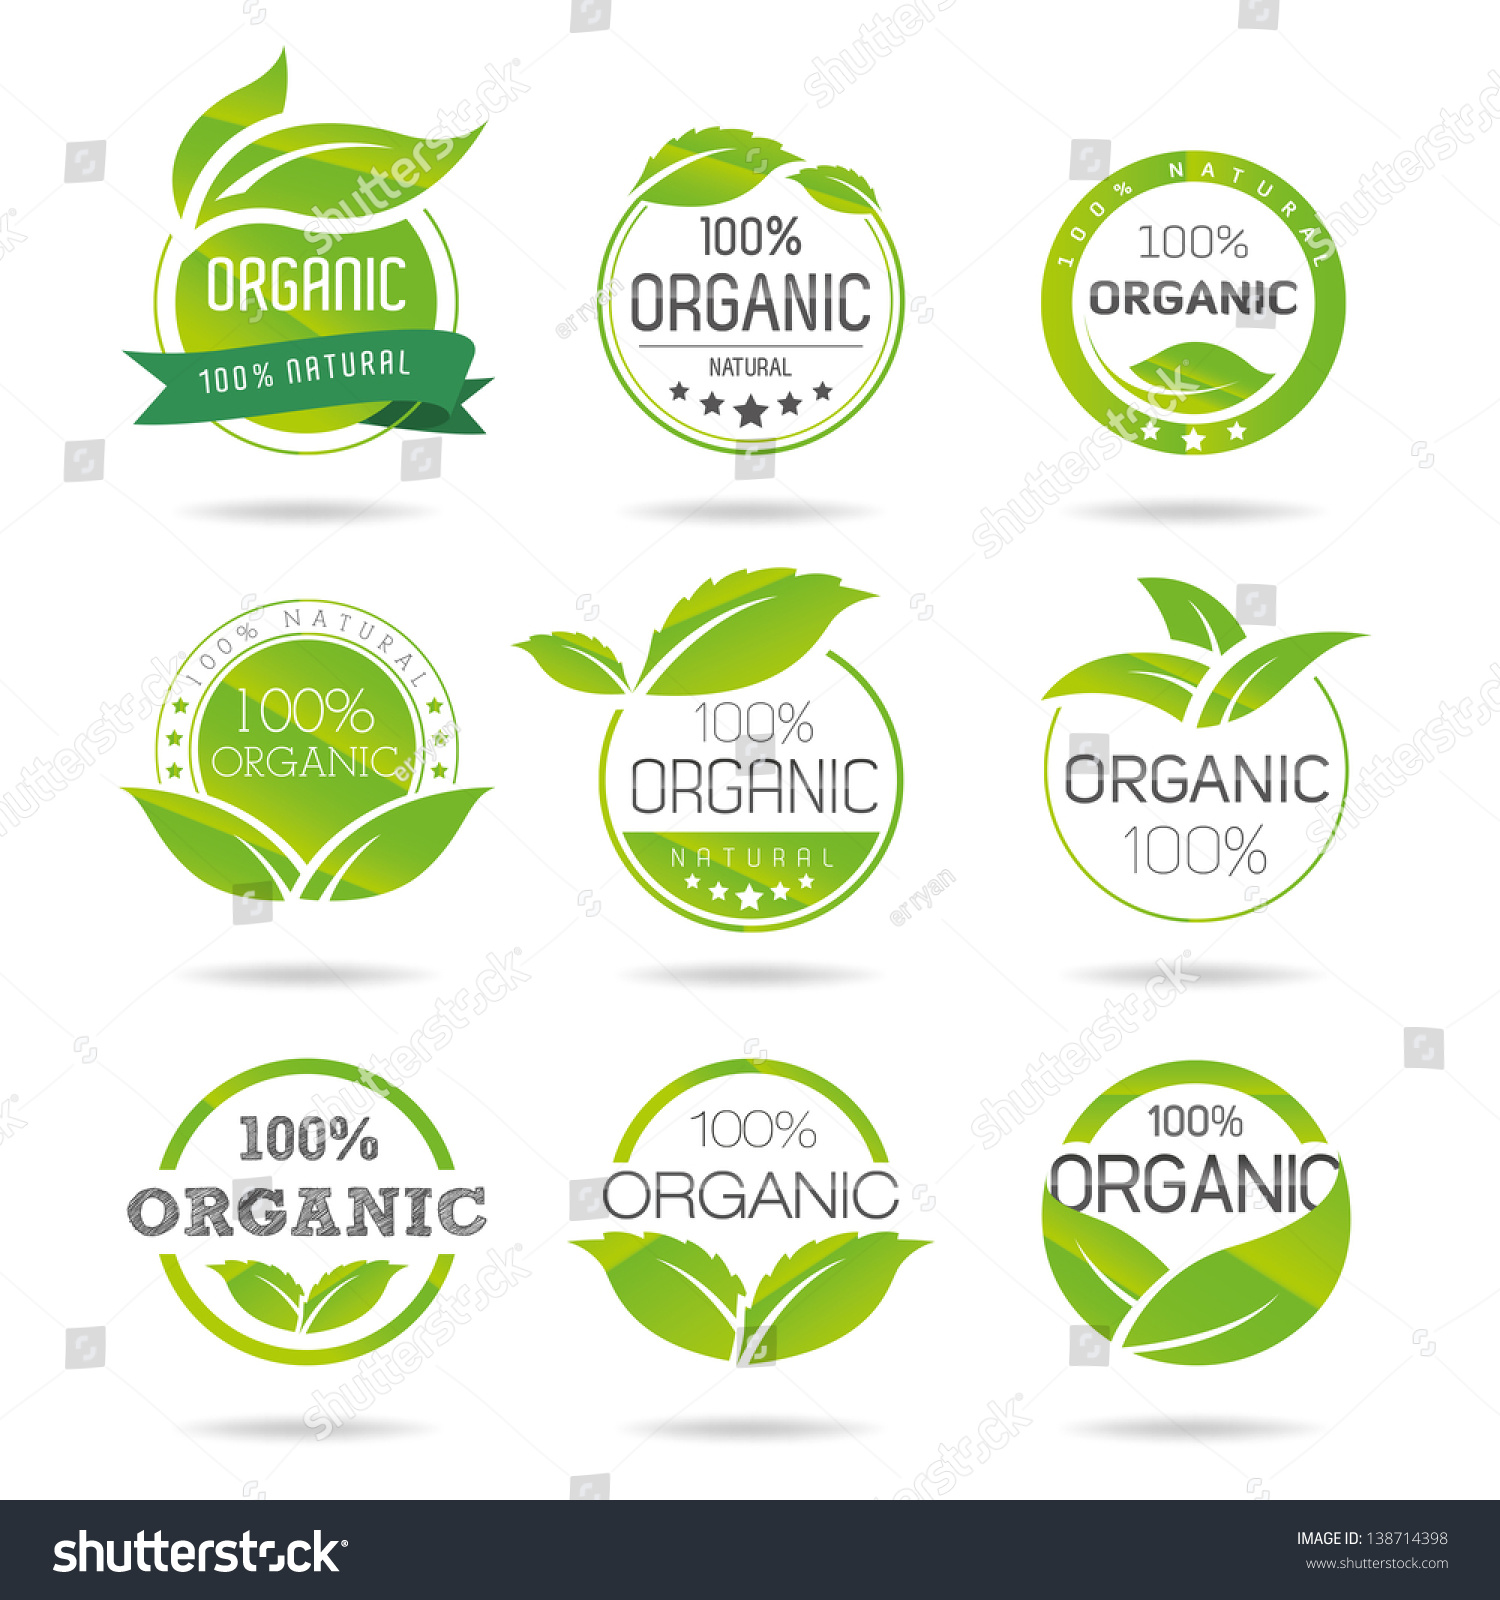 ecology organic icon set ecoicons stock vector royalty free